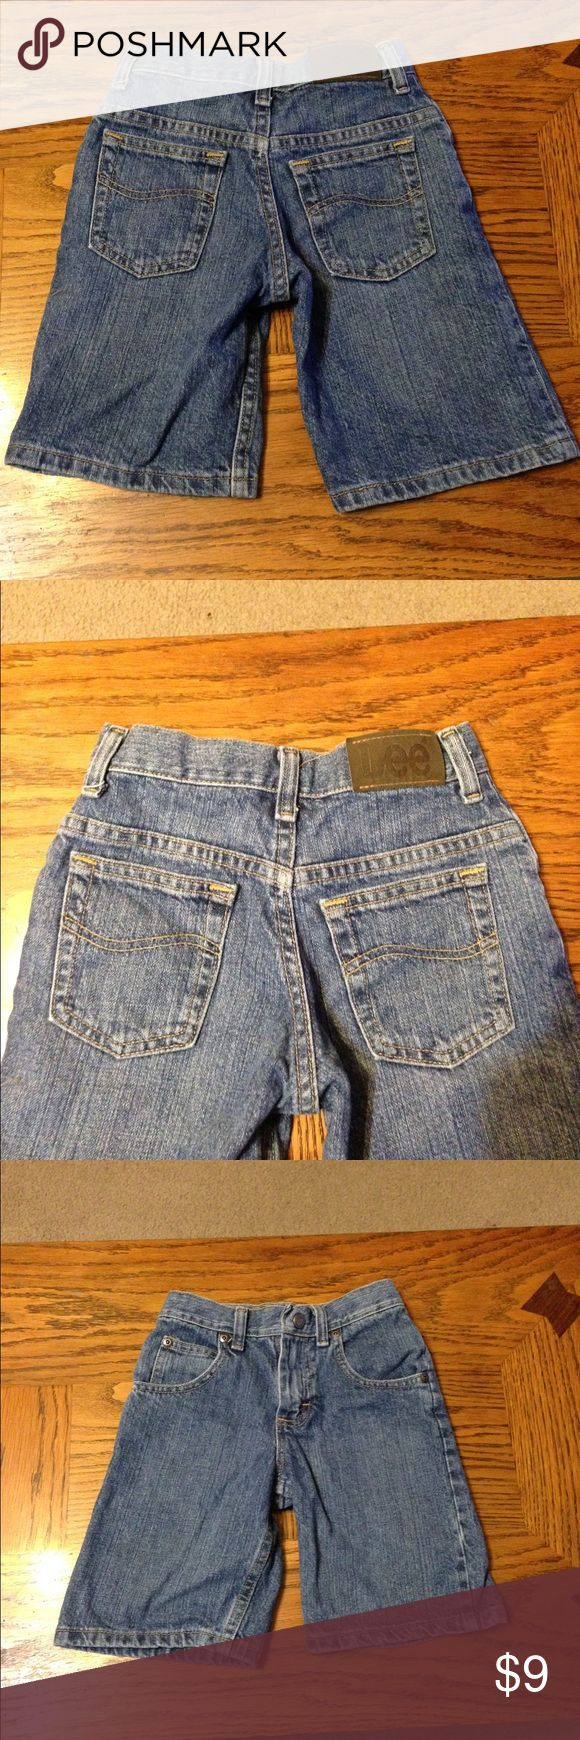 Lee Jean Shorts Size 6 EUC Lee Jean Shorts. Regular fit. Lee Bottoms Shorts